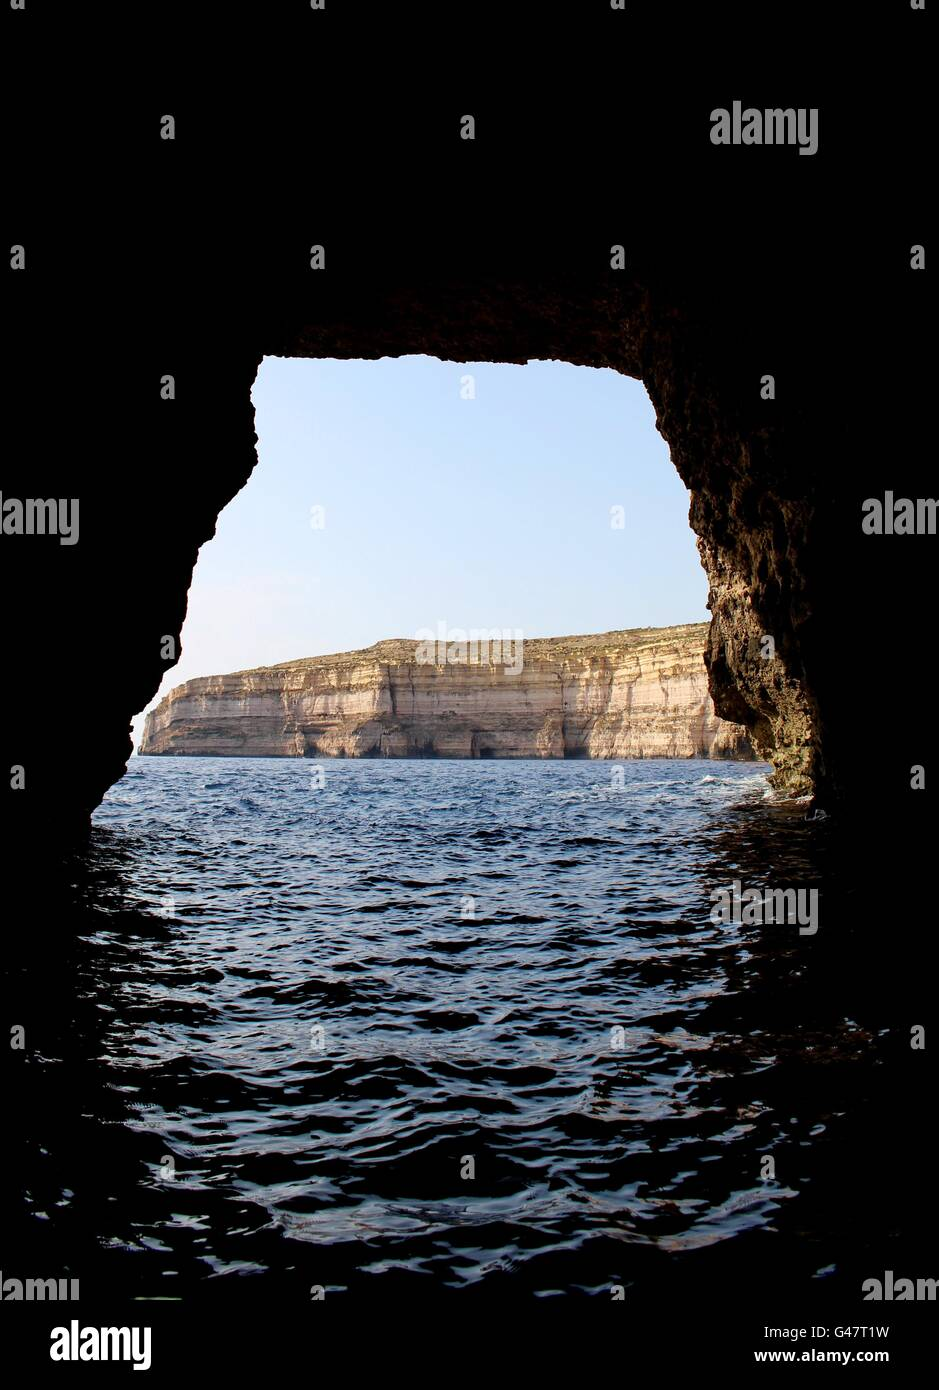 The journey through Gozo's limestone cliffs from the inland sea to the Mediterranean sea. Stock Photo